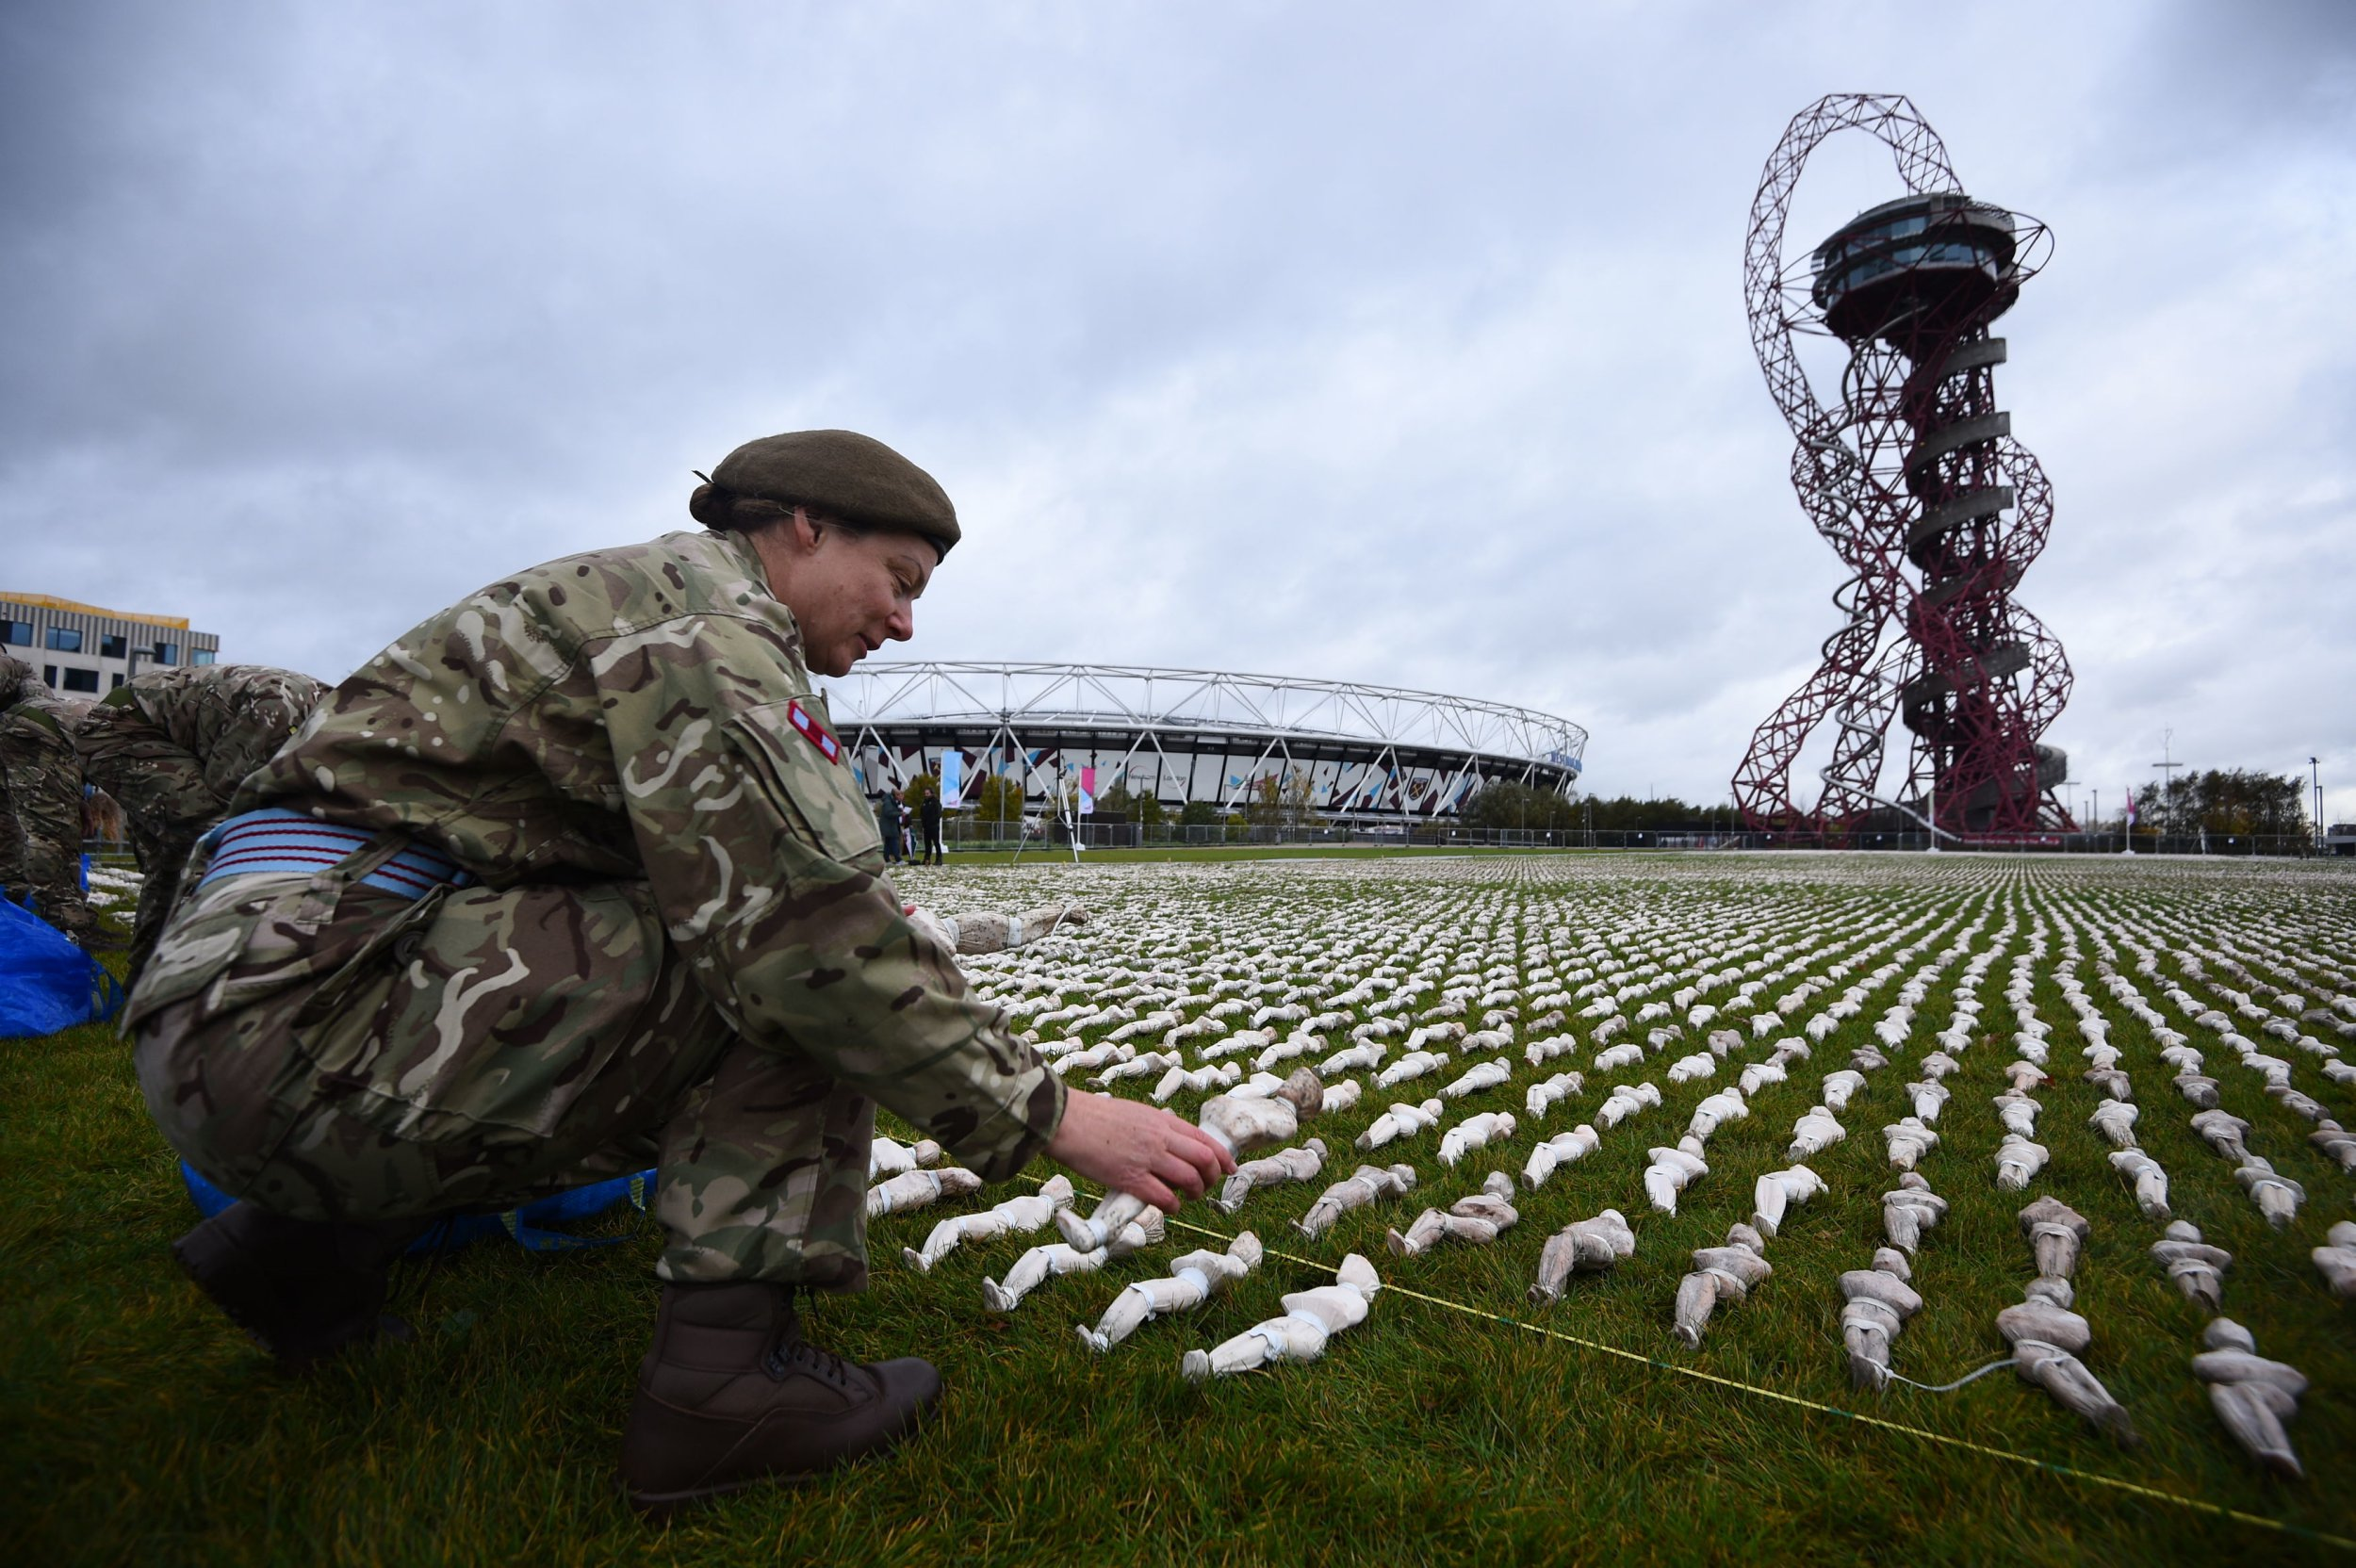 A figure is placed in Rob Heard's Shrouds of the Somme installation, honouring the dead of the First World War, at the Queen Elizabeth Olympic Park in London. PRESS ASSOCIATION Photo. Picture date: Wednesday November 7, 2018. 72,396 small shrouded figures, representing soldiers who died and were never recovered from the Somme battlefields, have been laid out by volunteers and members of 1 Royal Anglian Regiment. Photo credit should read: Kirsty O'Connor/PA Wire